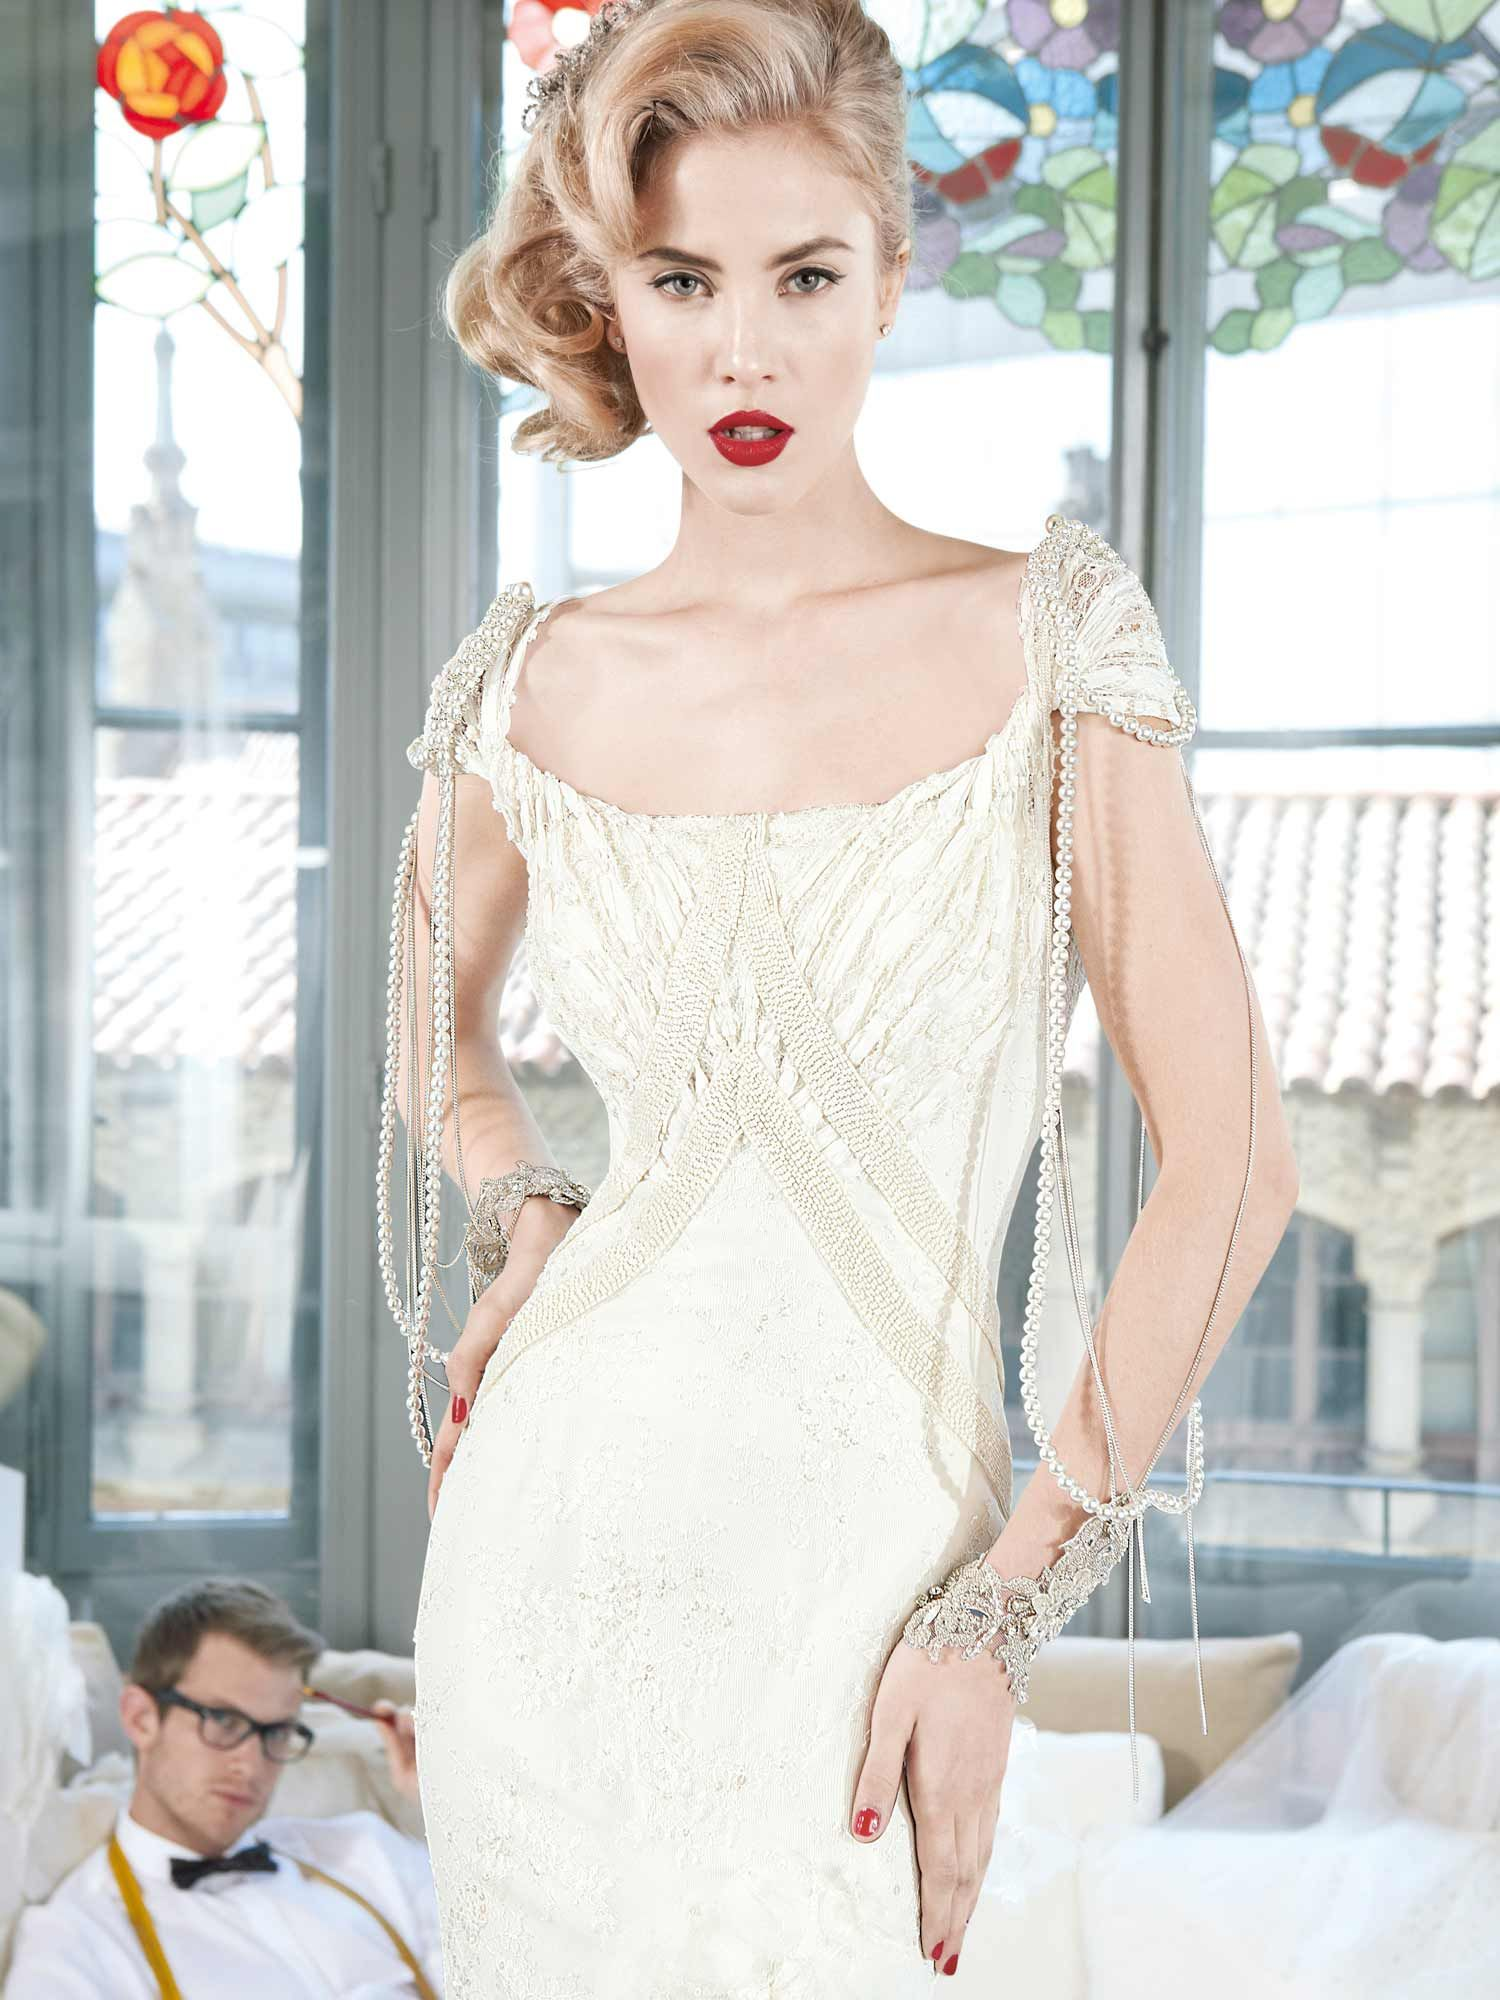 This dress is called nantes and is exceptional in its design details